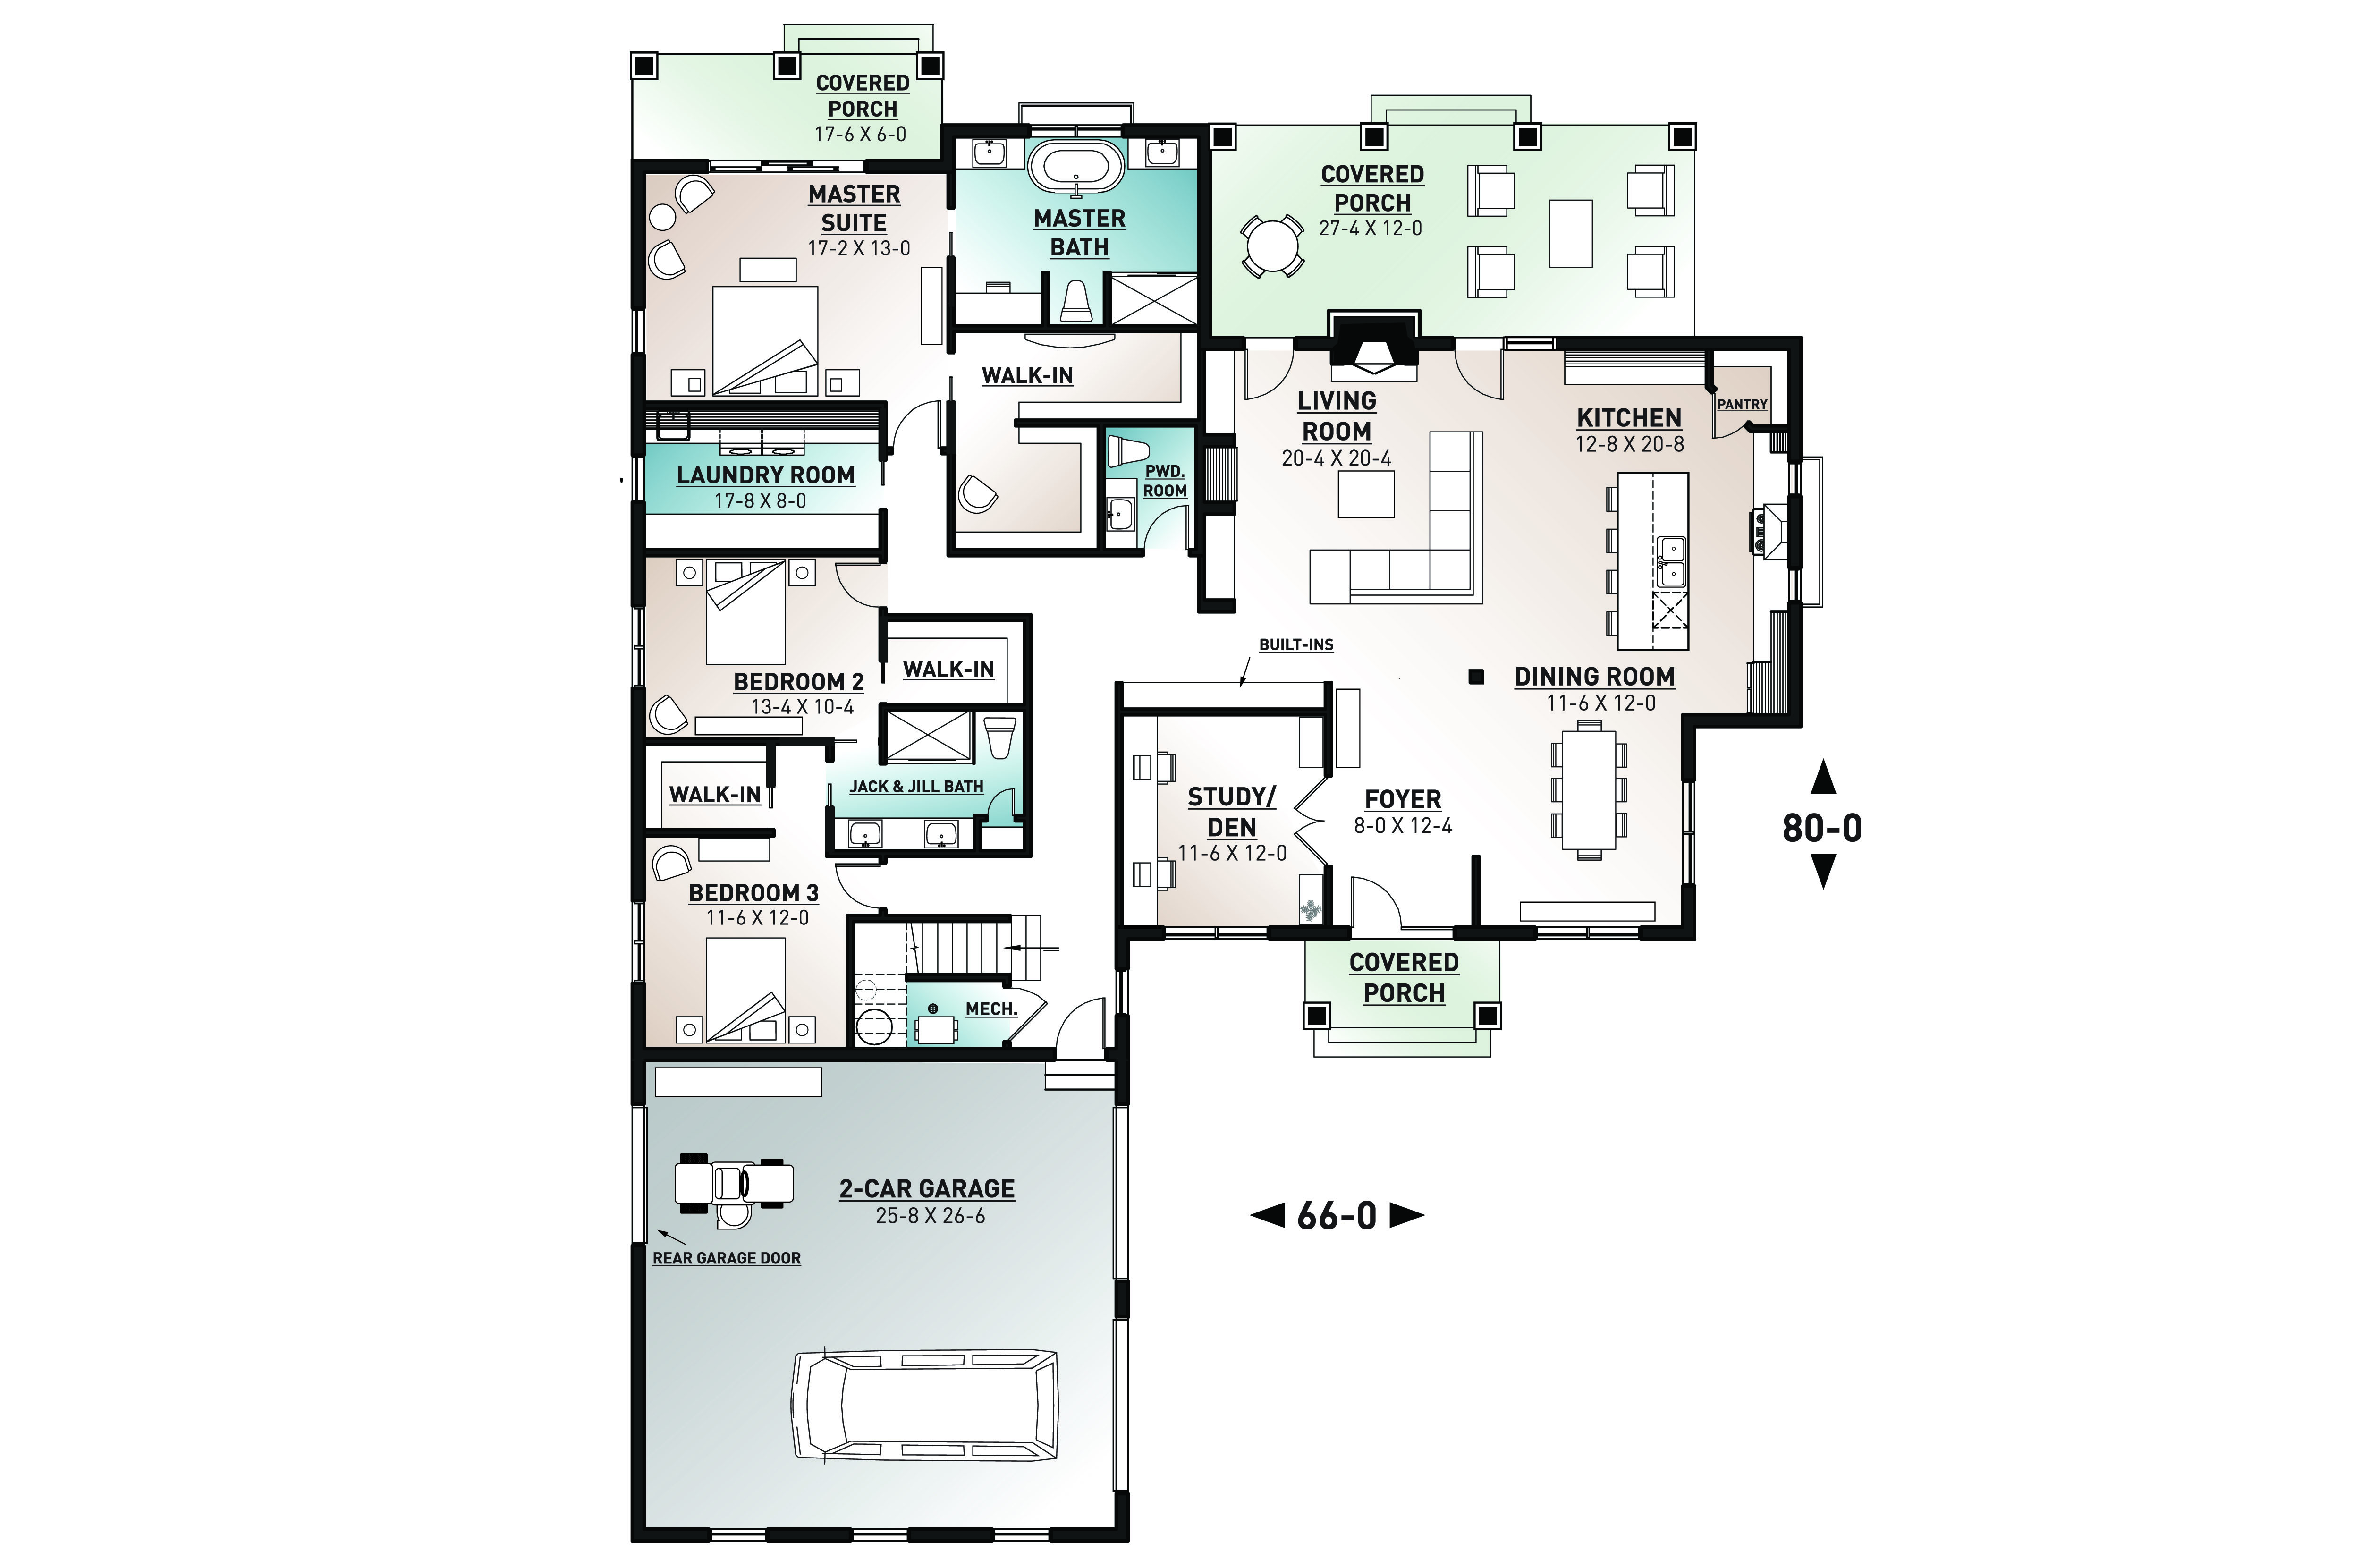 Millport 2 # 36134   The House Plan Company on ranch house floor plans with walk in pantry, ranch house floor plans with carport, ranch house floor plans with basement, ranch house floor plans with wrap around porch, ranch house floor plans with 4 bedrooms,